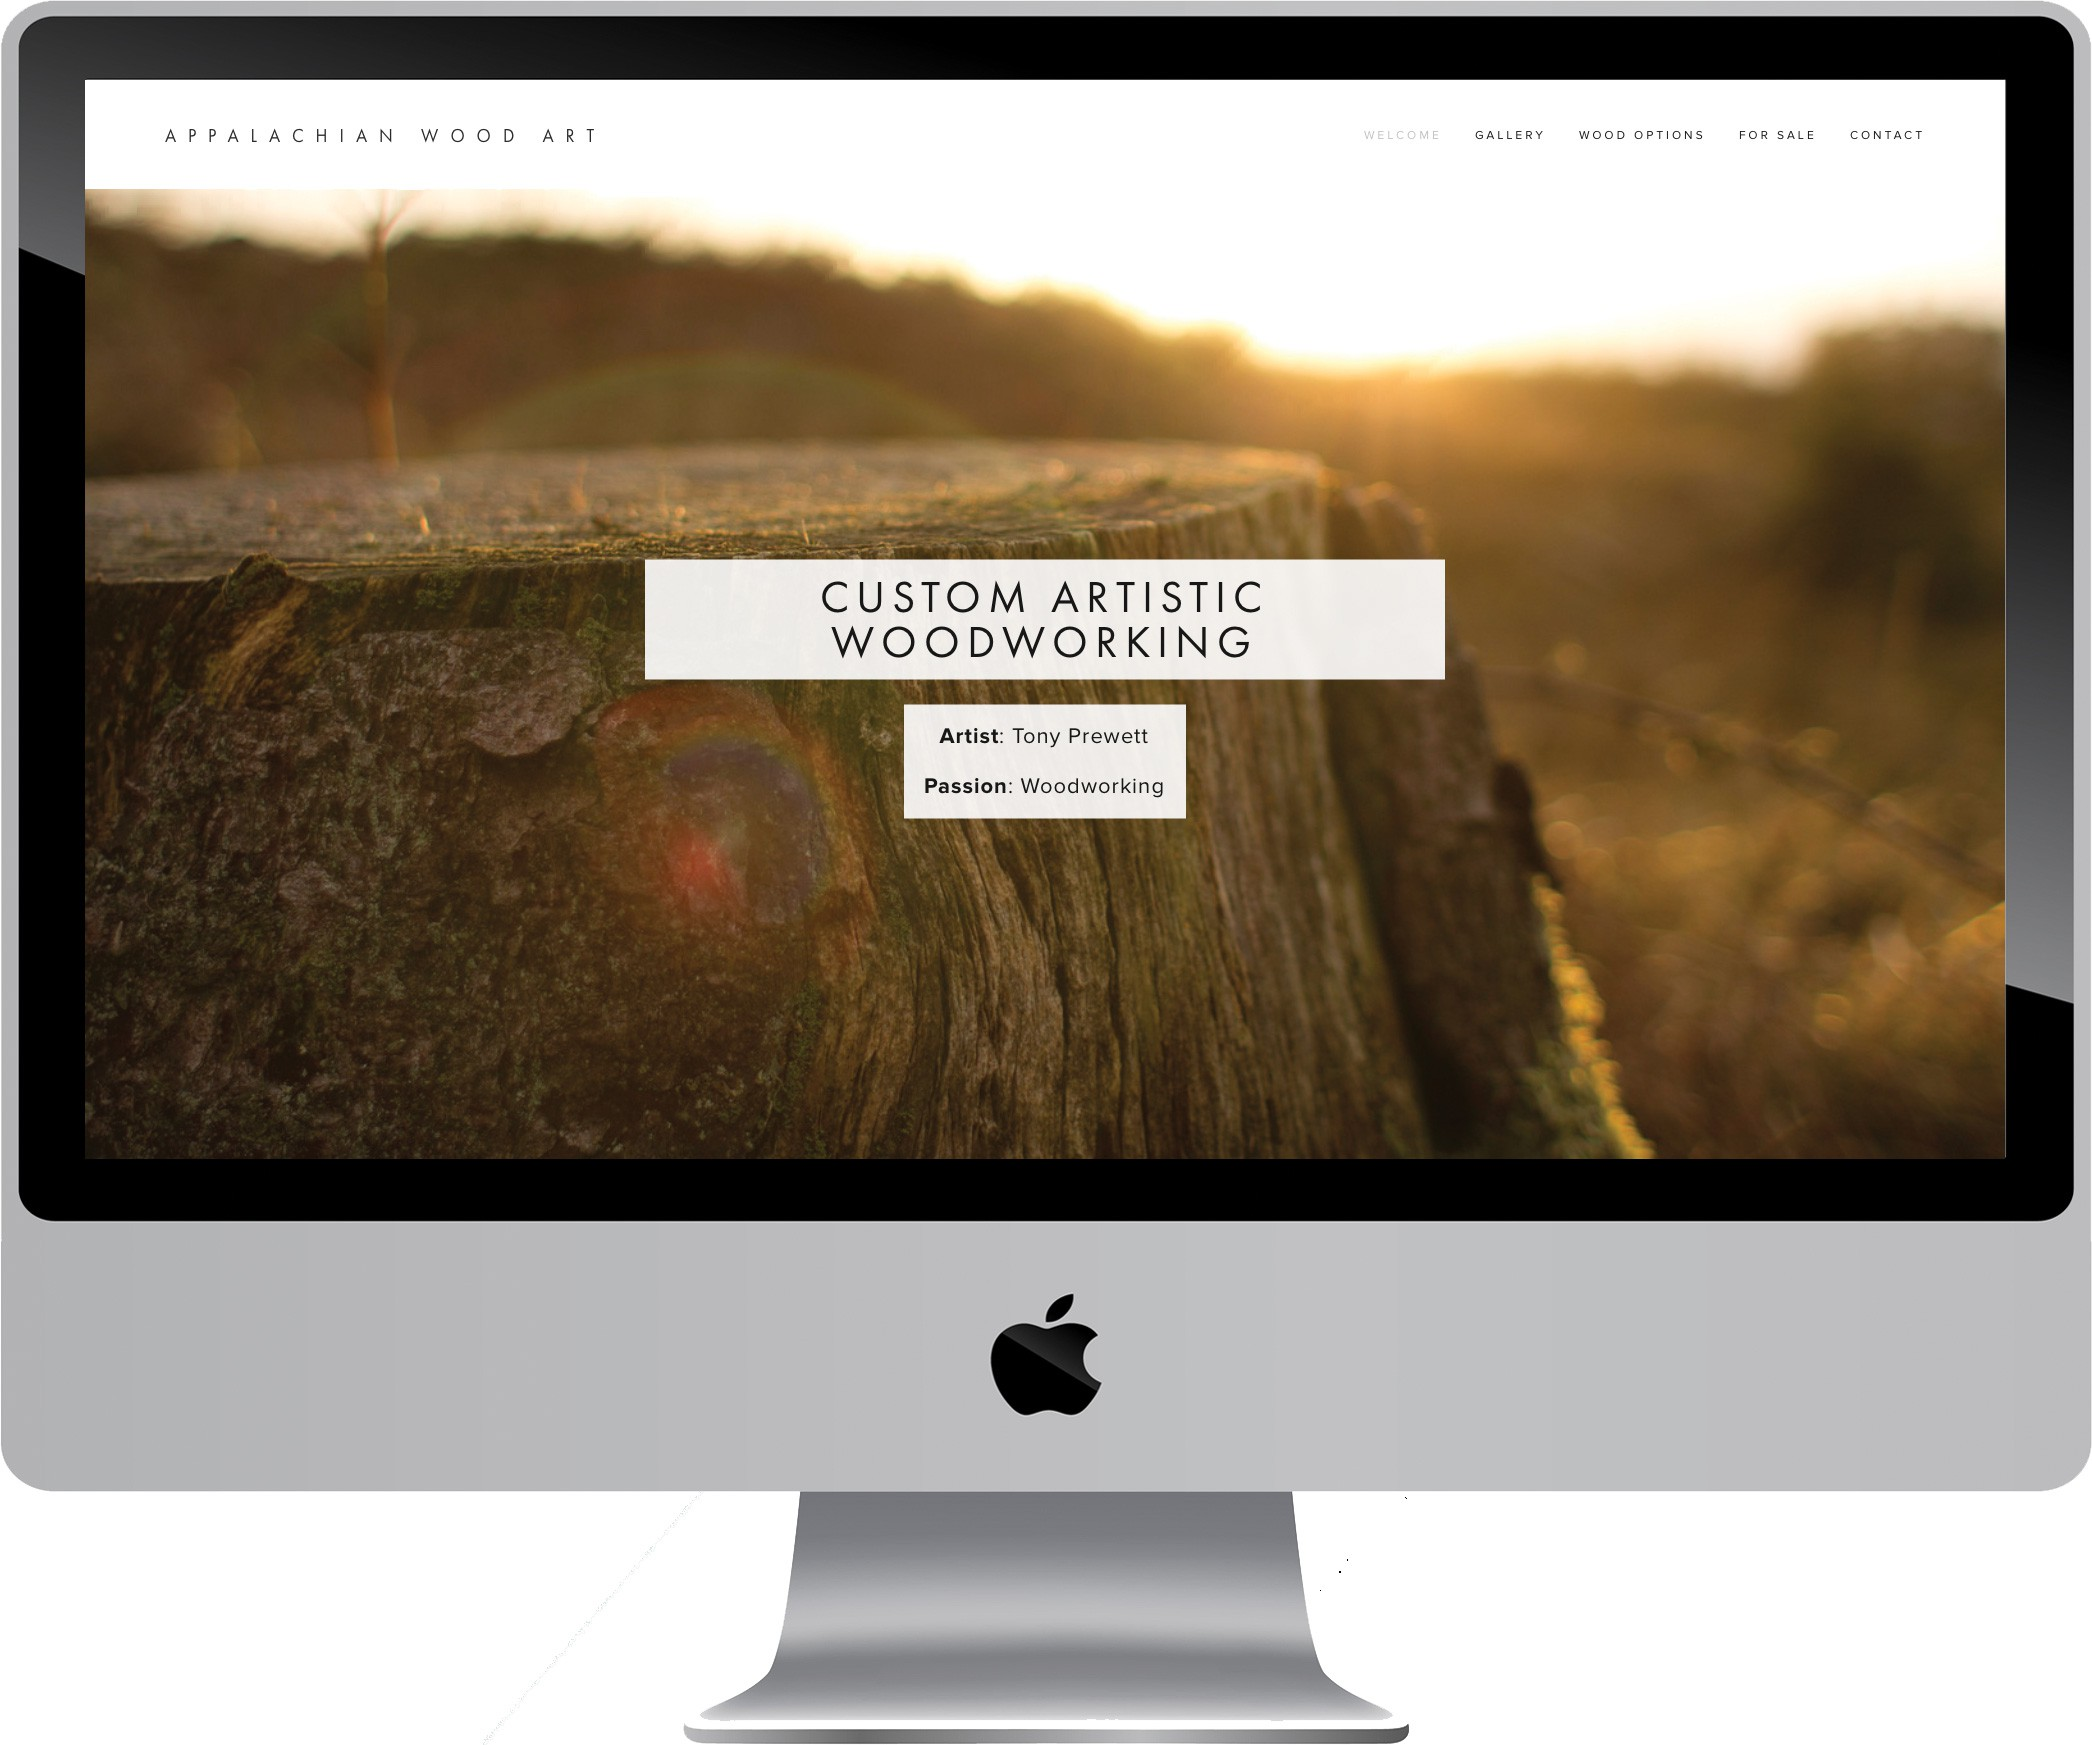 Appalachian Wood Art Web Design on a Desktop